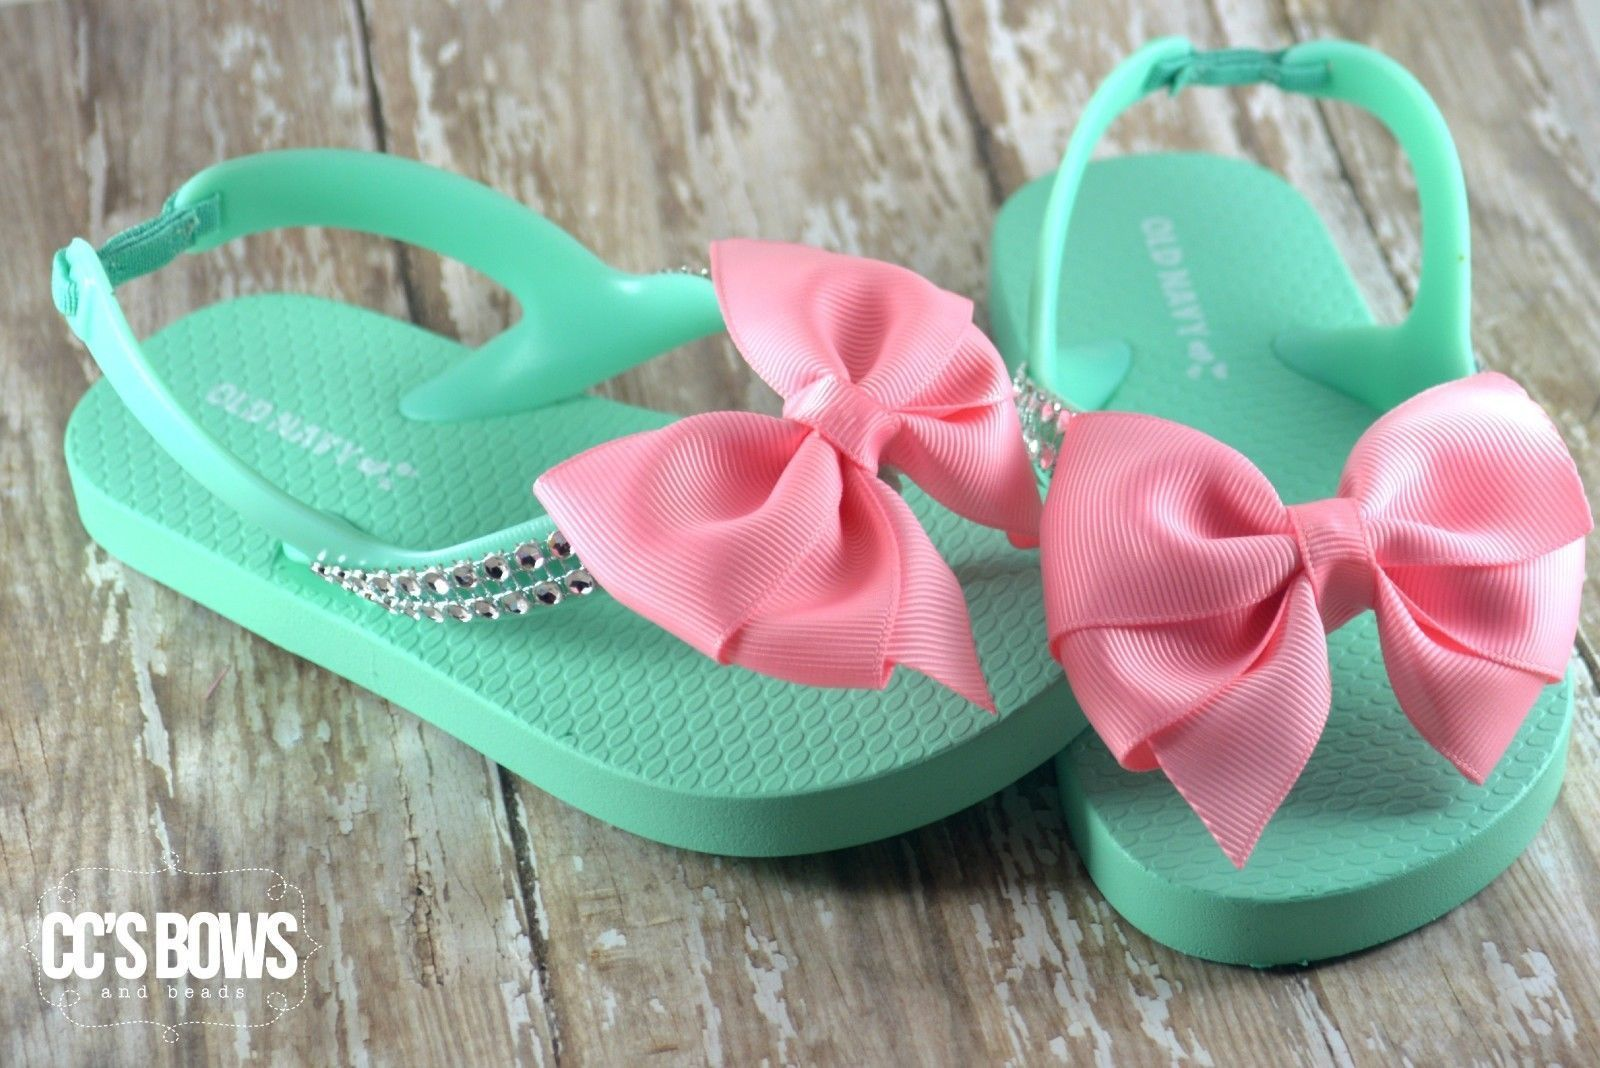 eb3c165444b1 Girls Toddlers Mint Green Old Navy Flip Flops Pink Boutique Bow ...